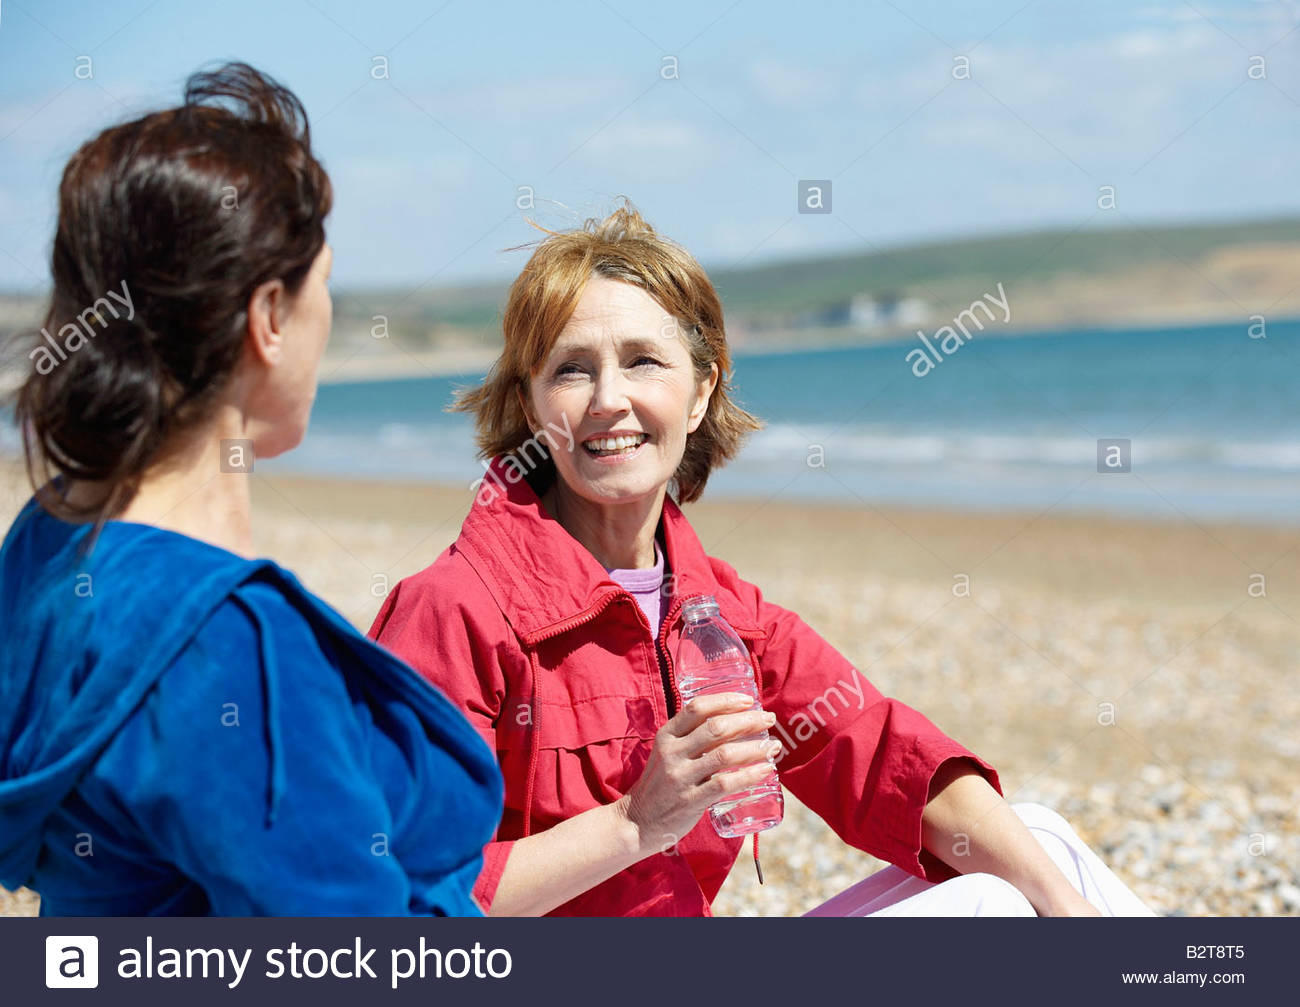 two mature women sitting on beach stock photo, royalty free image